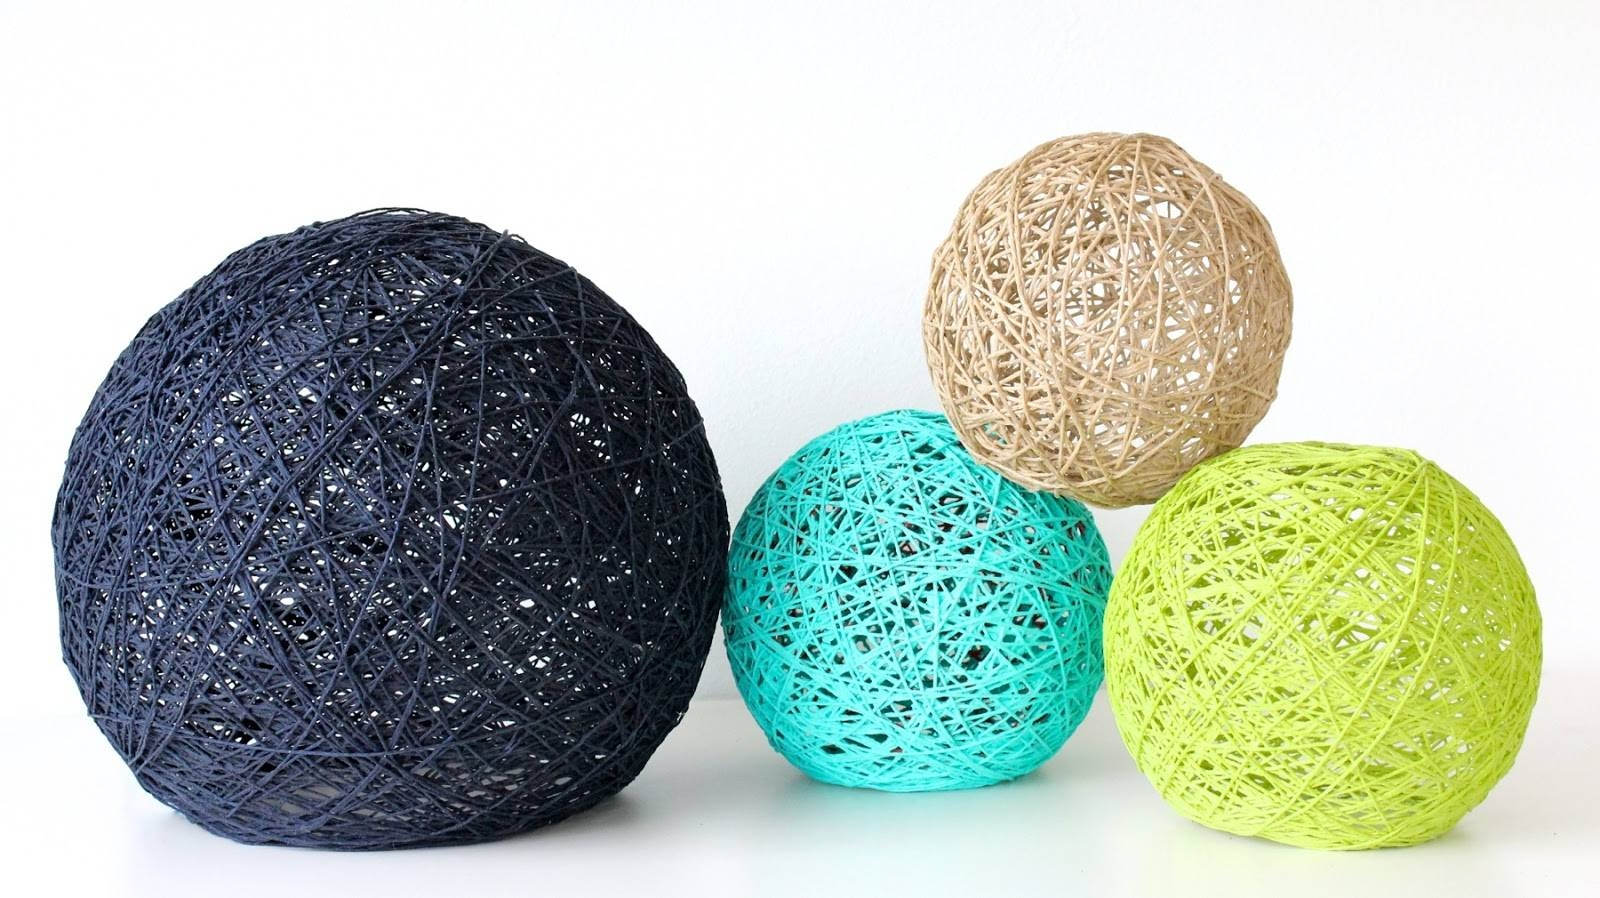 New Video! How To Make Giant Yarn Lampshades, Lanterns, And Globes inside Diy Yarn Lights (Image 11 of 15)